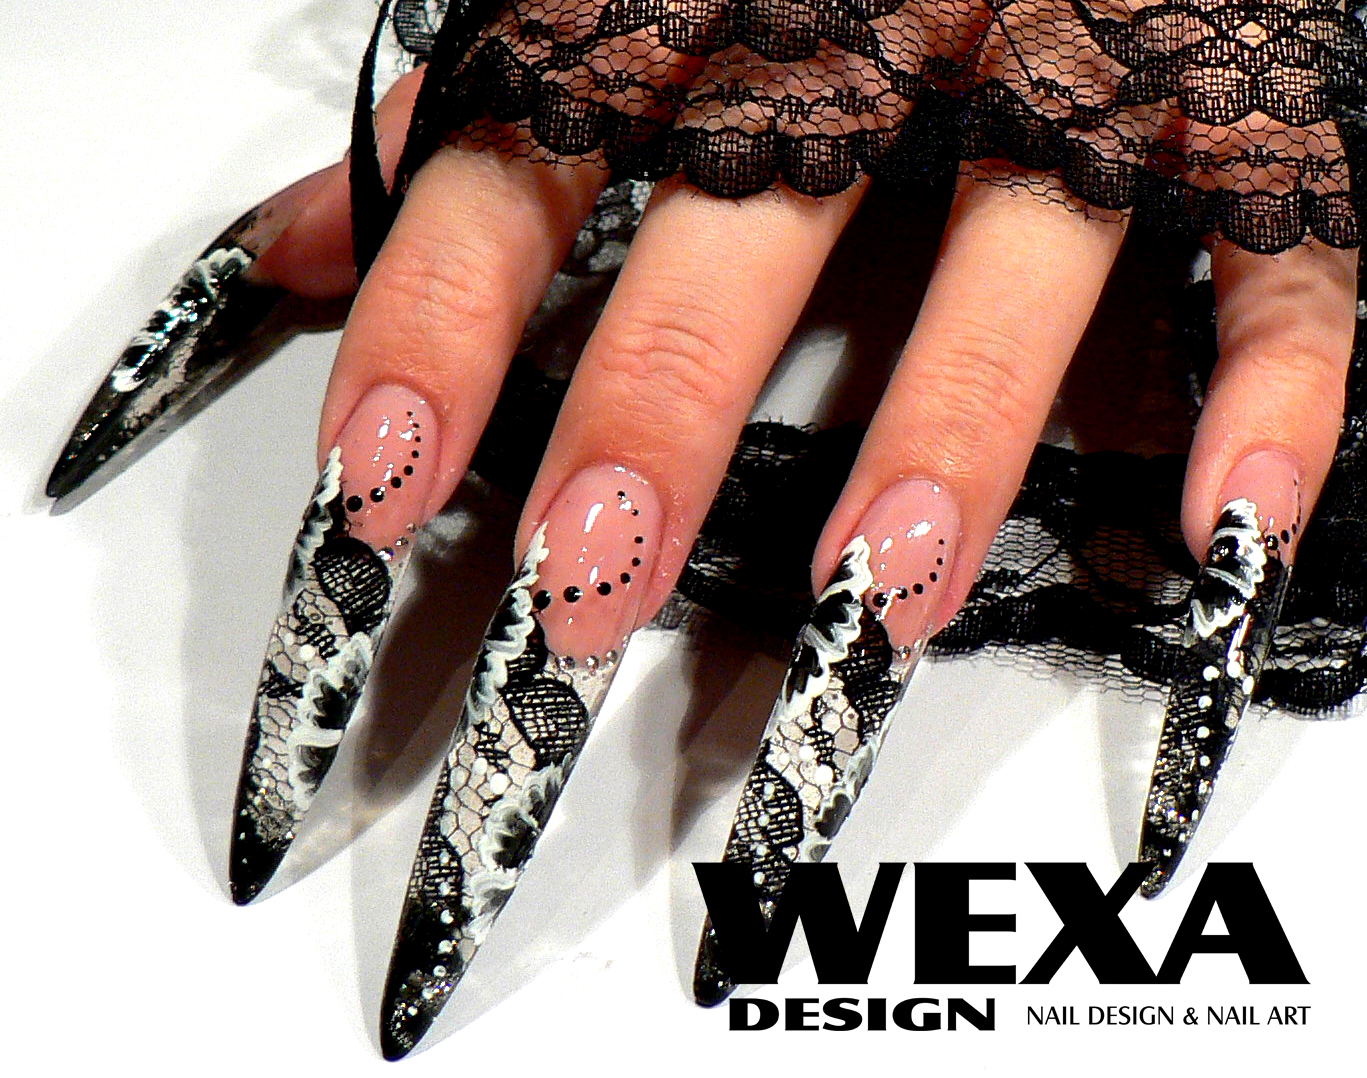 Obrazky likewise gelnagels nail art halloween further cnd shellac nail